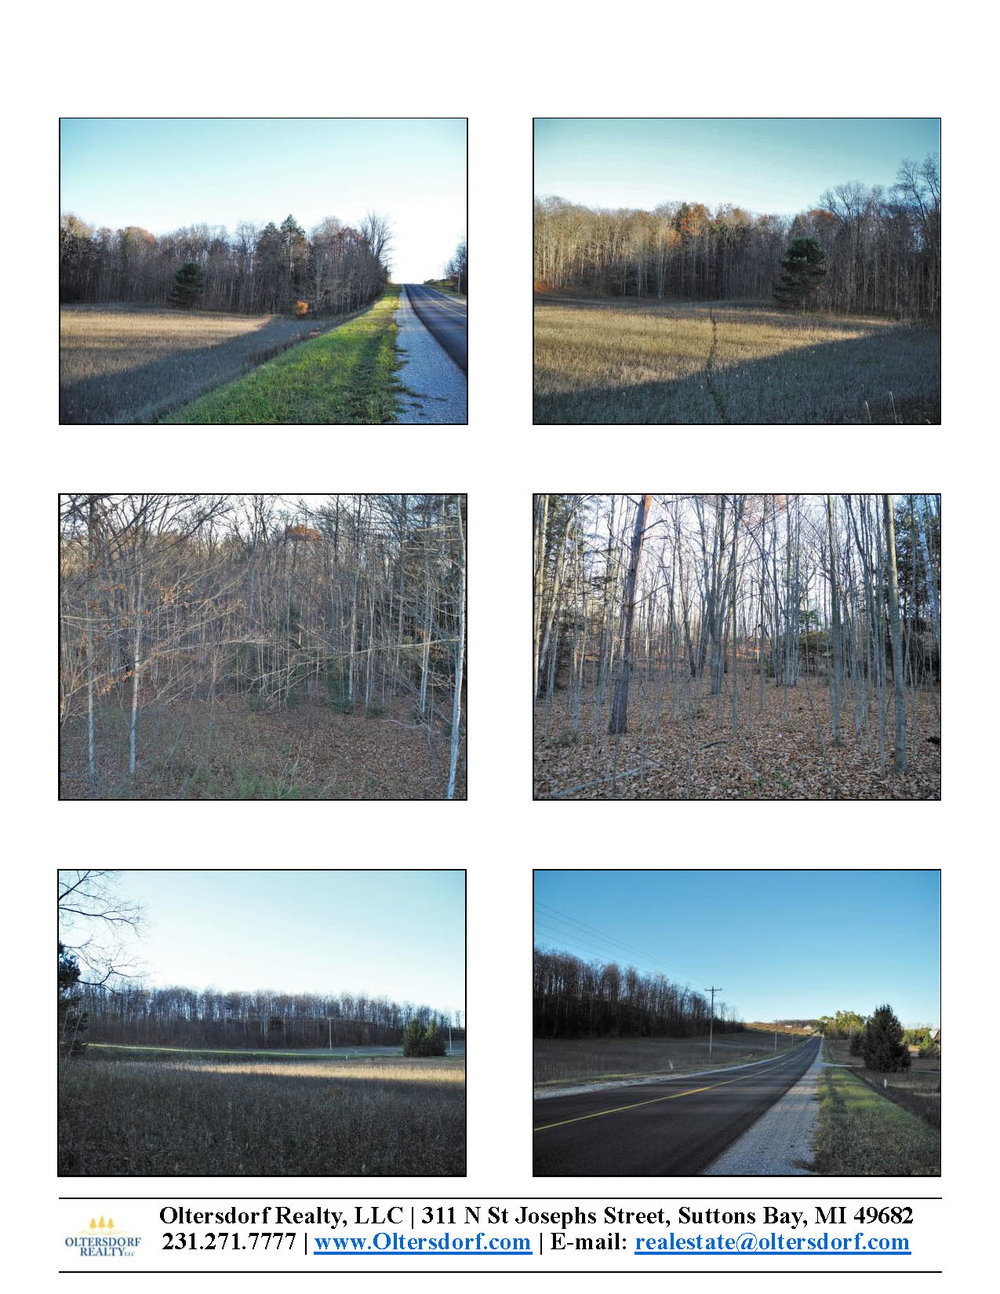 S Maple Valley Road, Suttons Bay, MI – 10.00 Acre Vacant Parcel  for sale by Oltersdorf Realty LLC (5).jpg